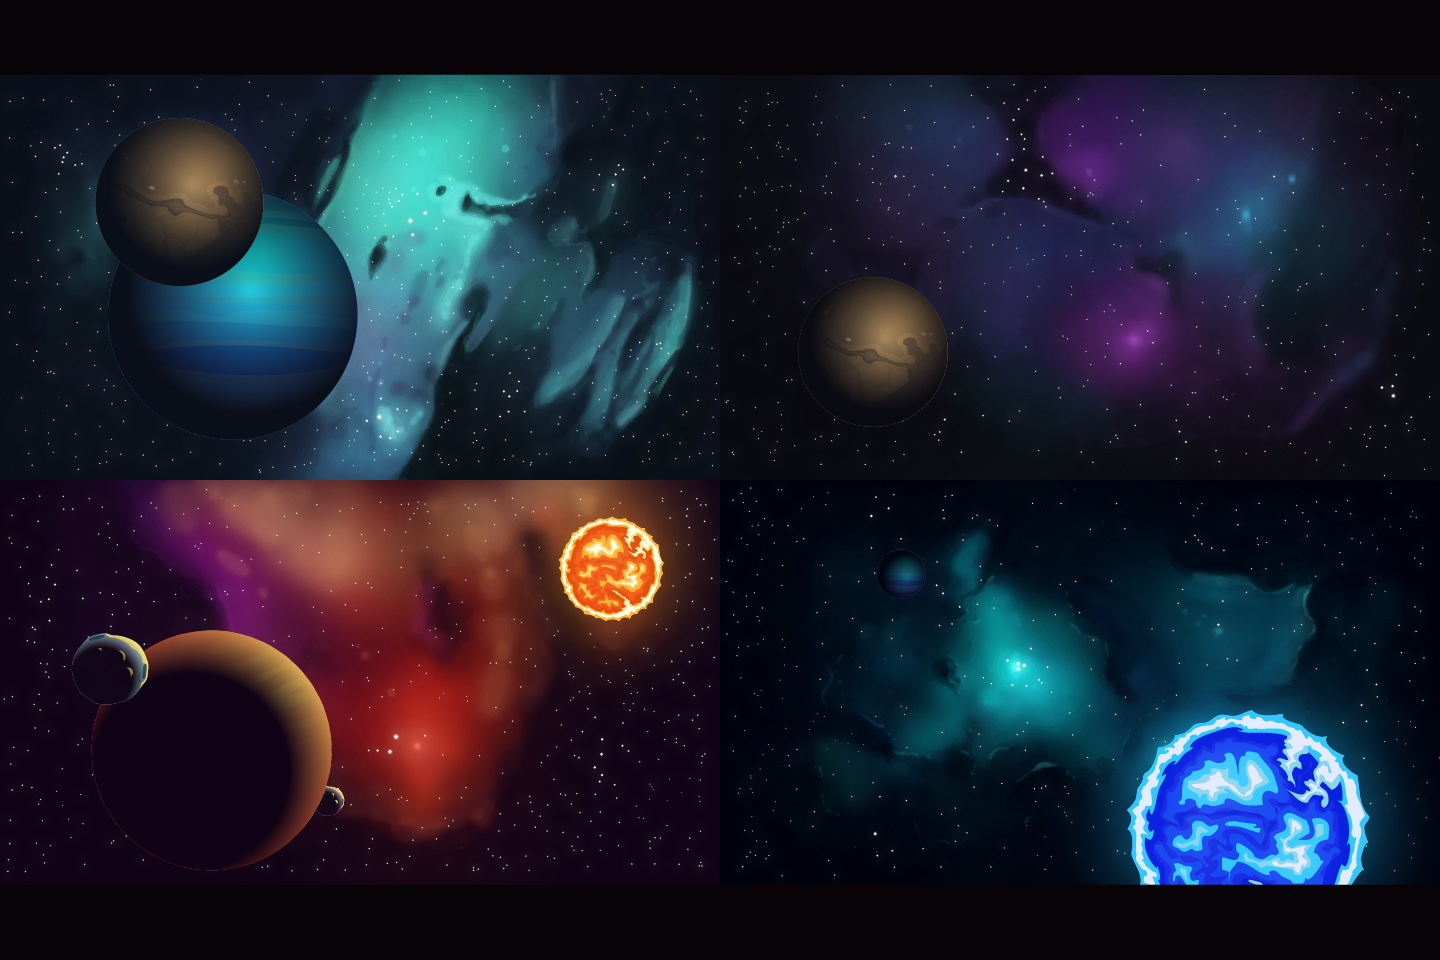 Space 2d backgrounds - Space wallpaper net ...